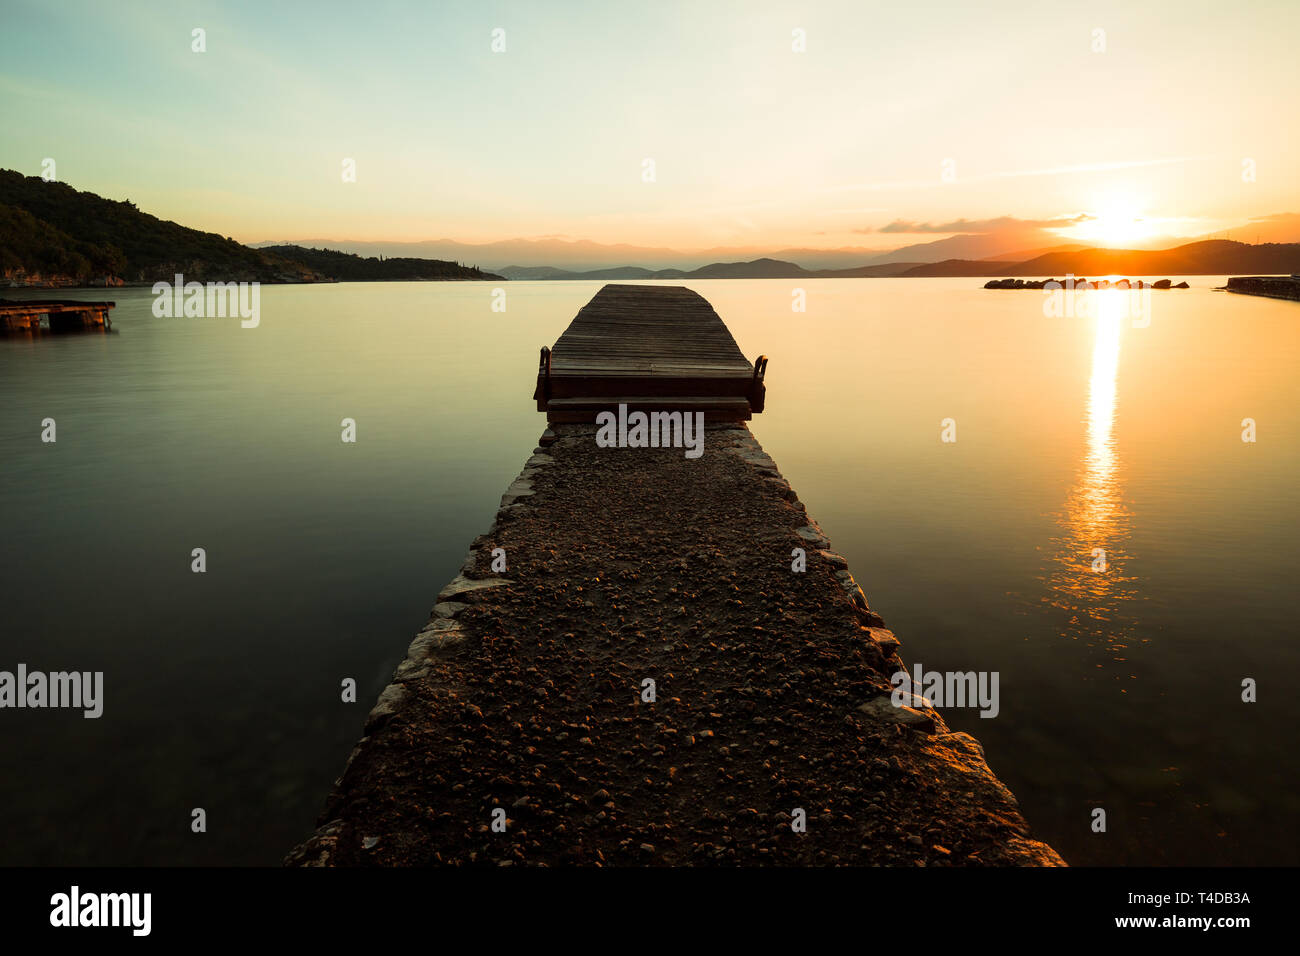 Sunrise over a little wooden pier in calm water with yellow tones, rising sun and majestic mountains (Kalami, Corfu, Greece, Europe) - Stock Image